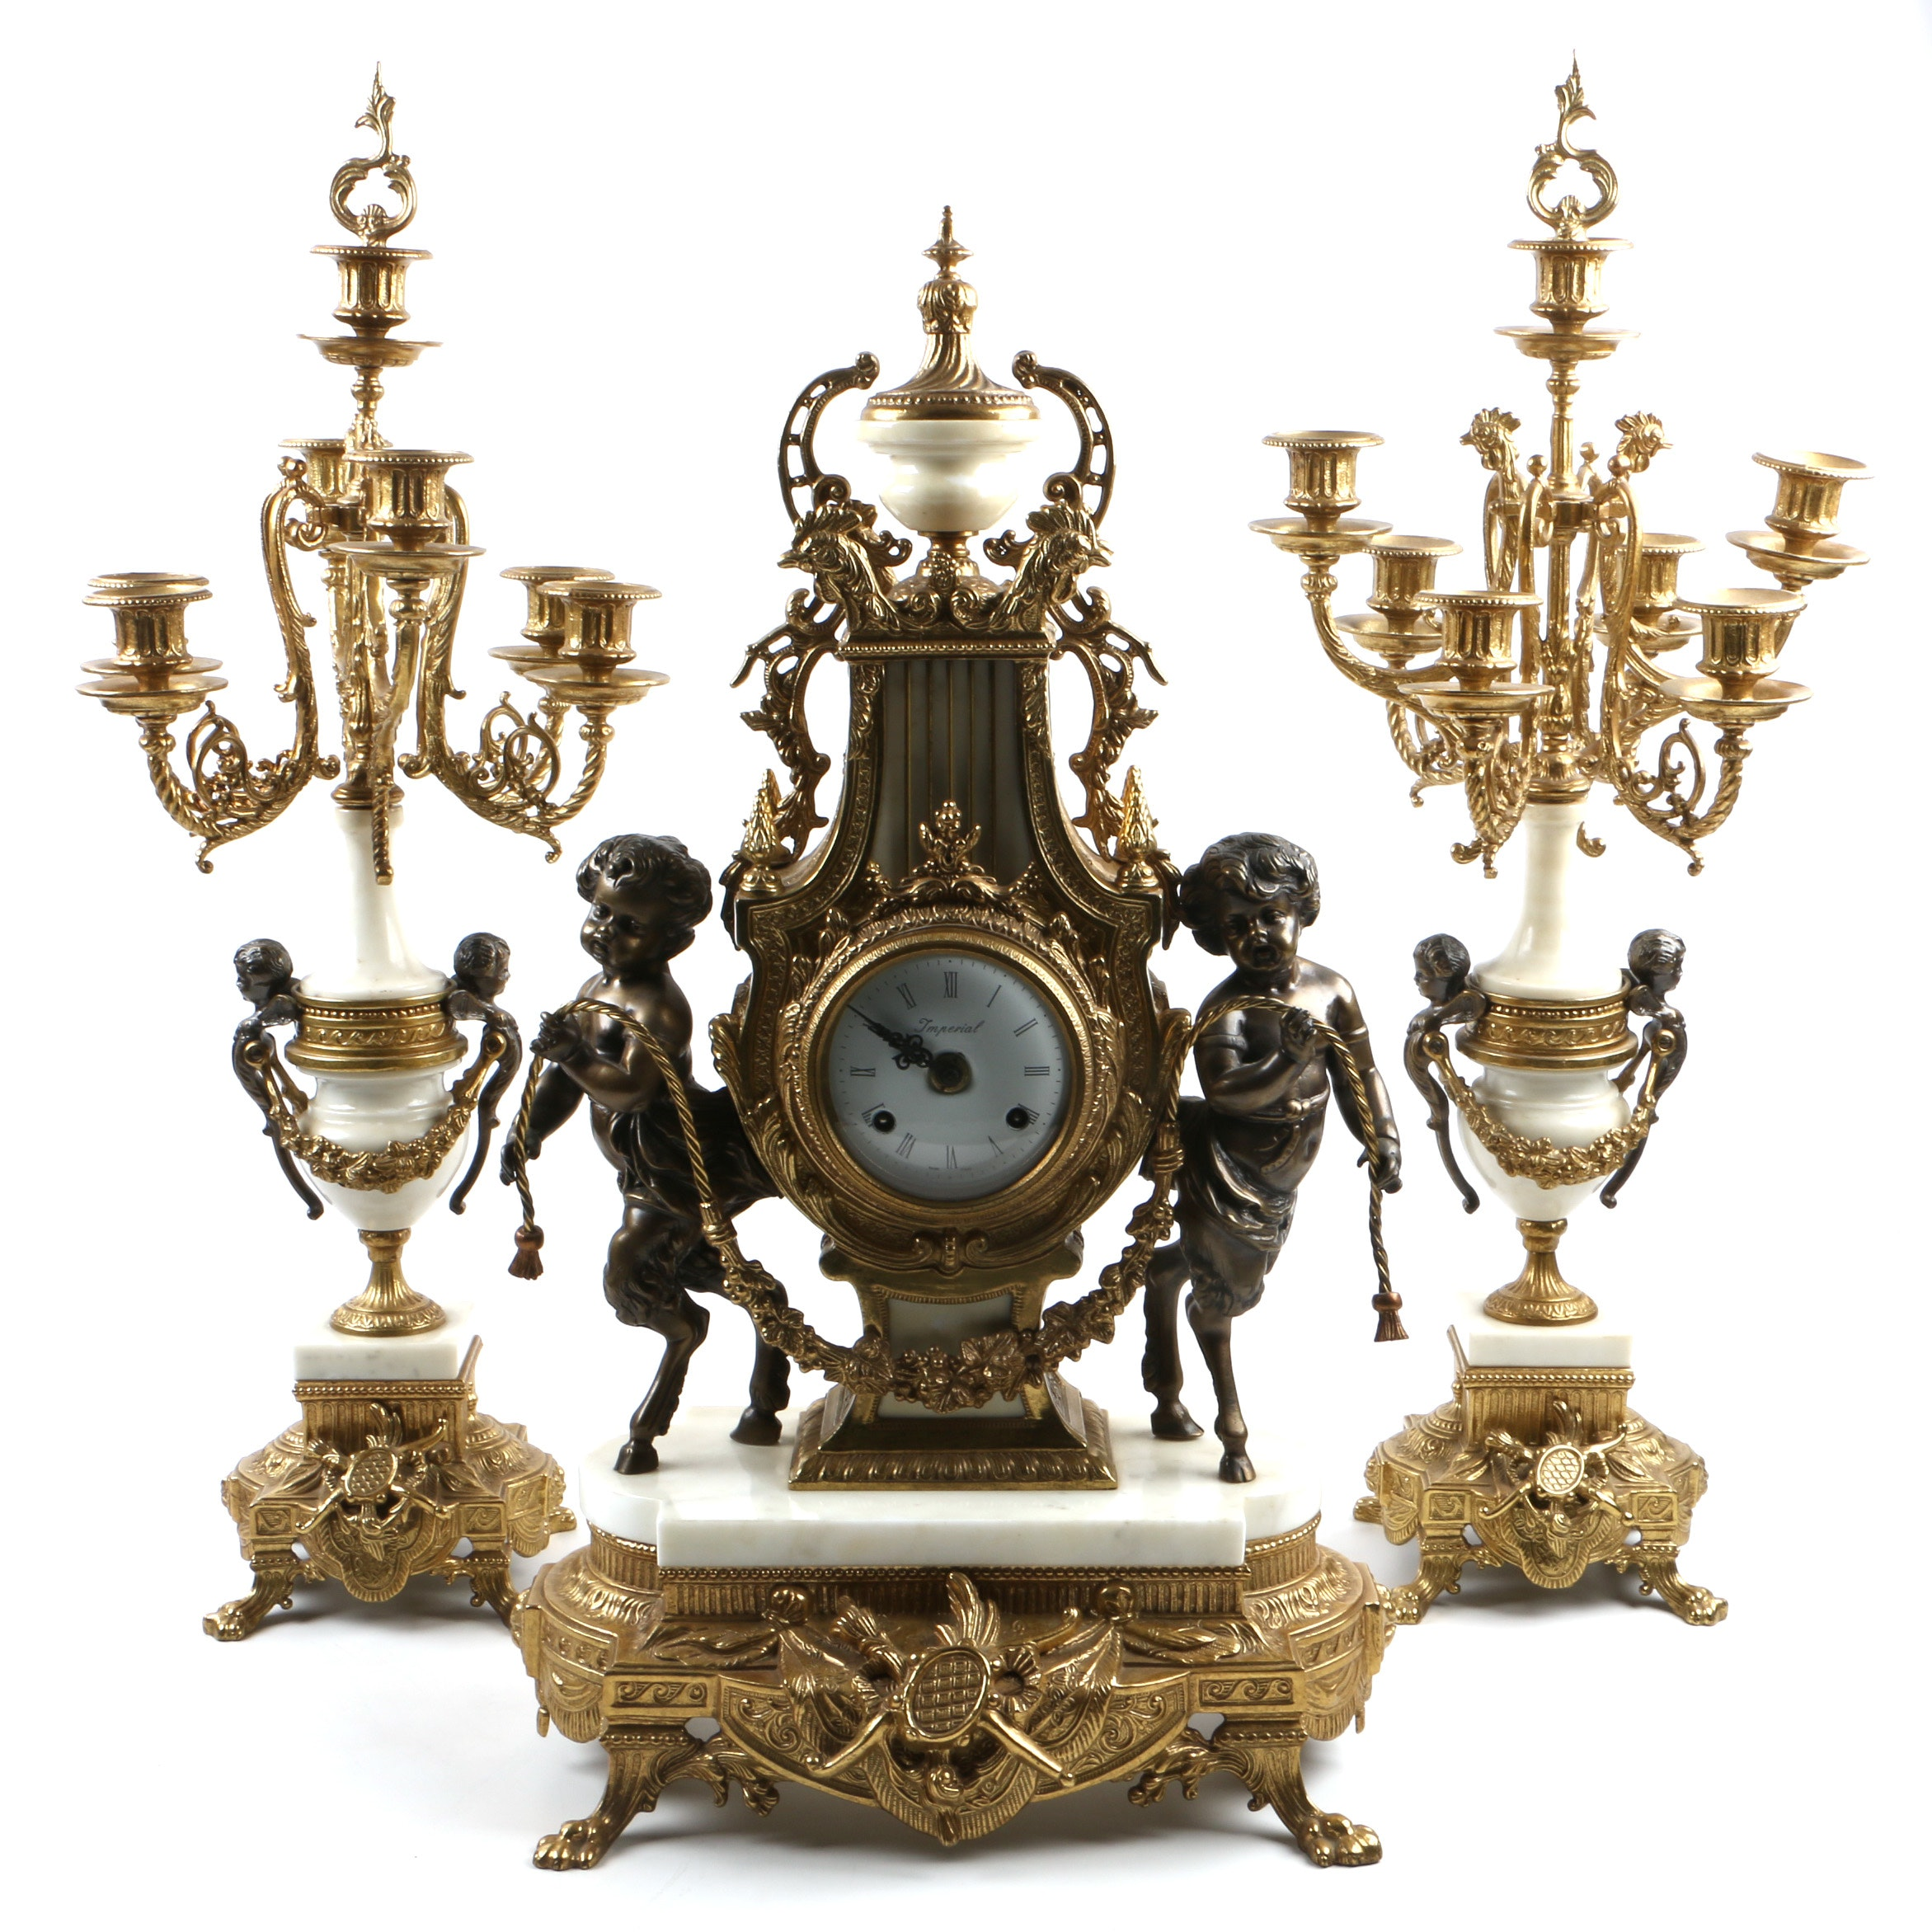 Italian Rococo Style Gilt Metal and Marble Clock Garniture Set by Brevettato